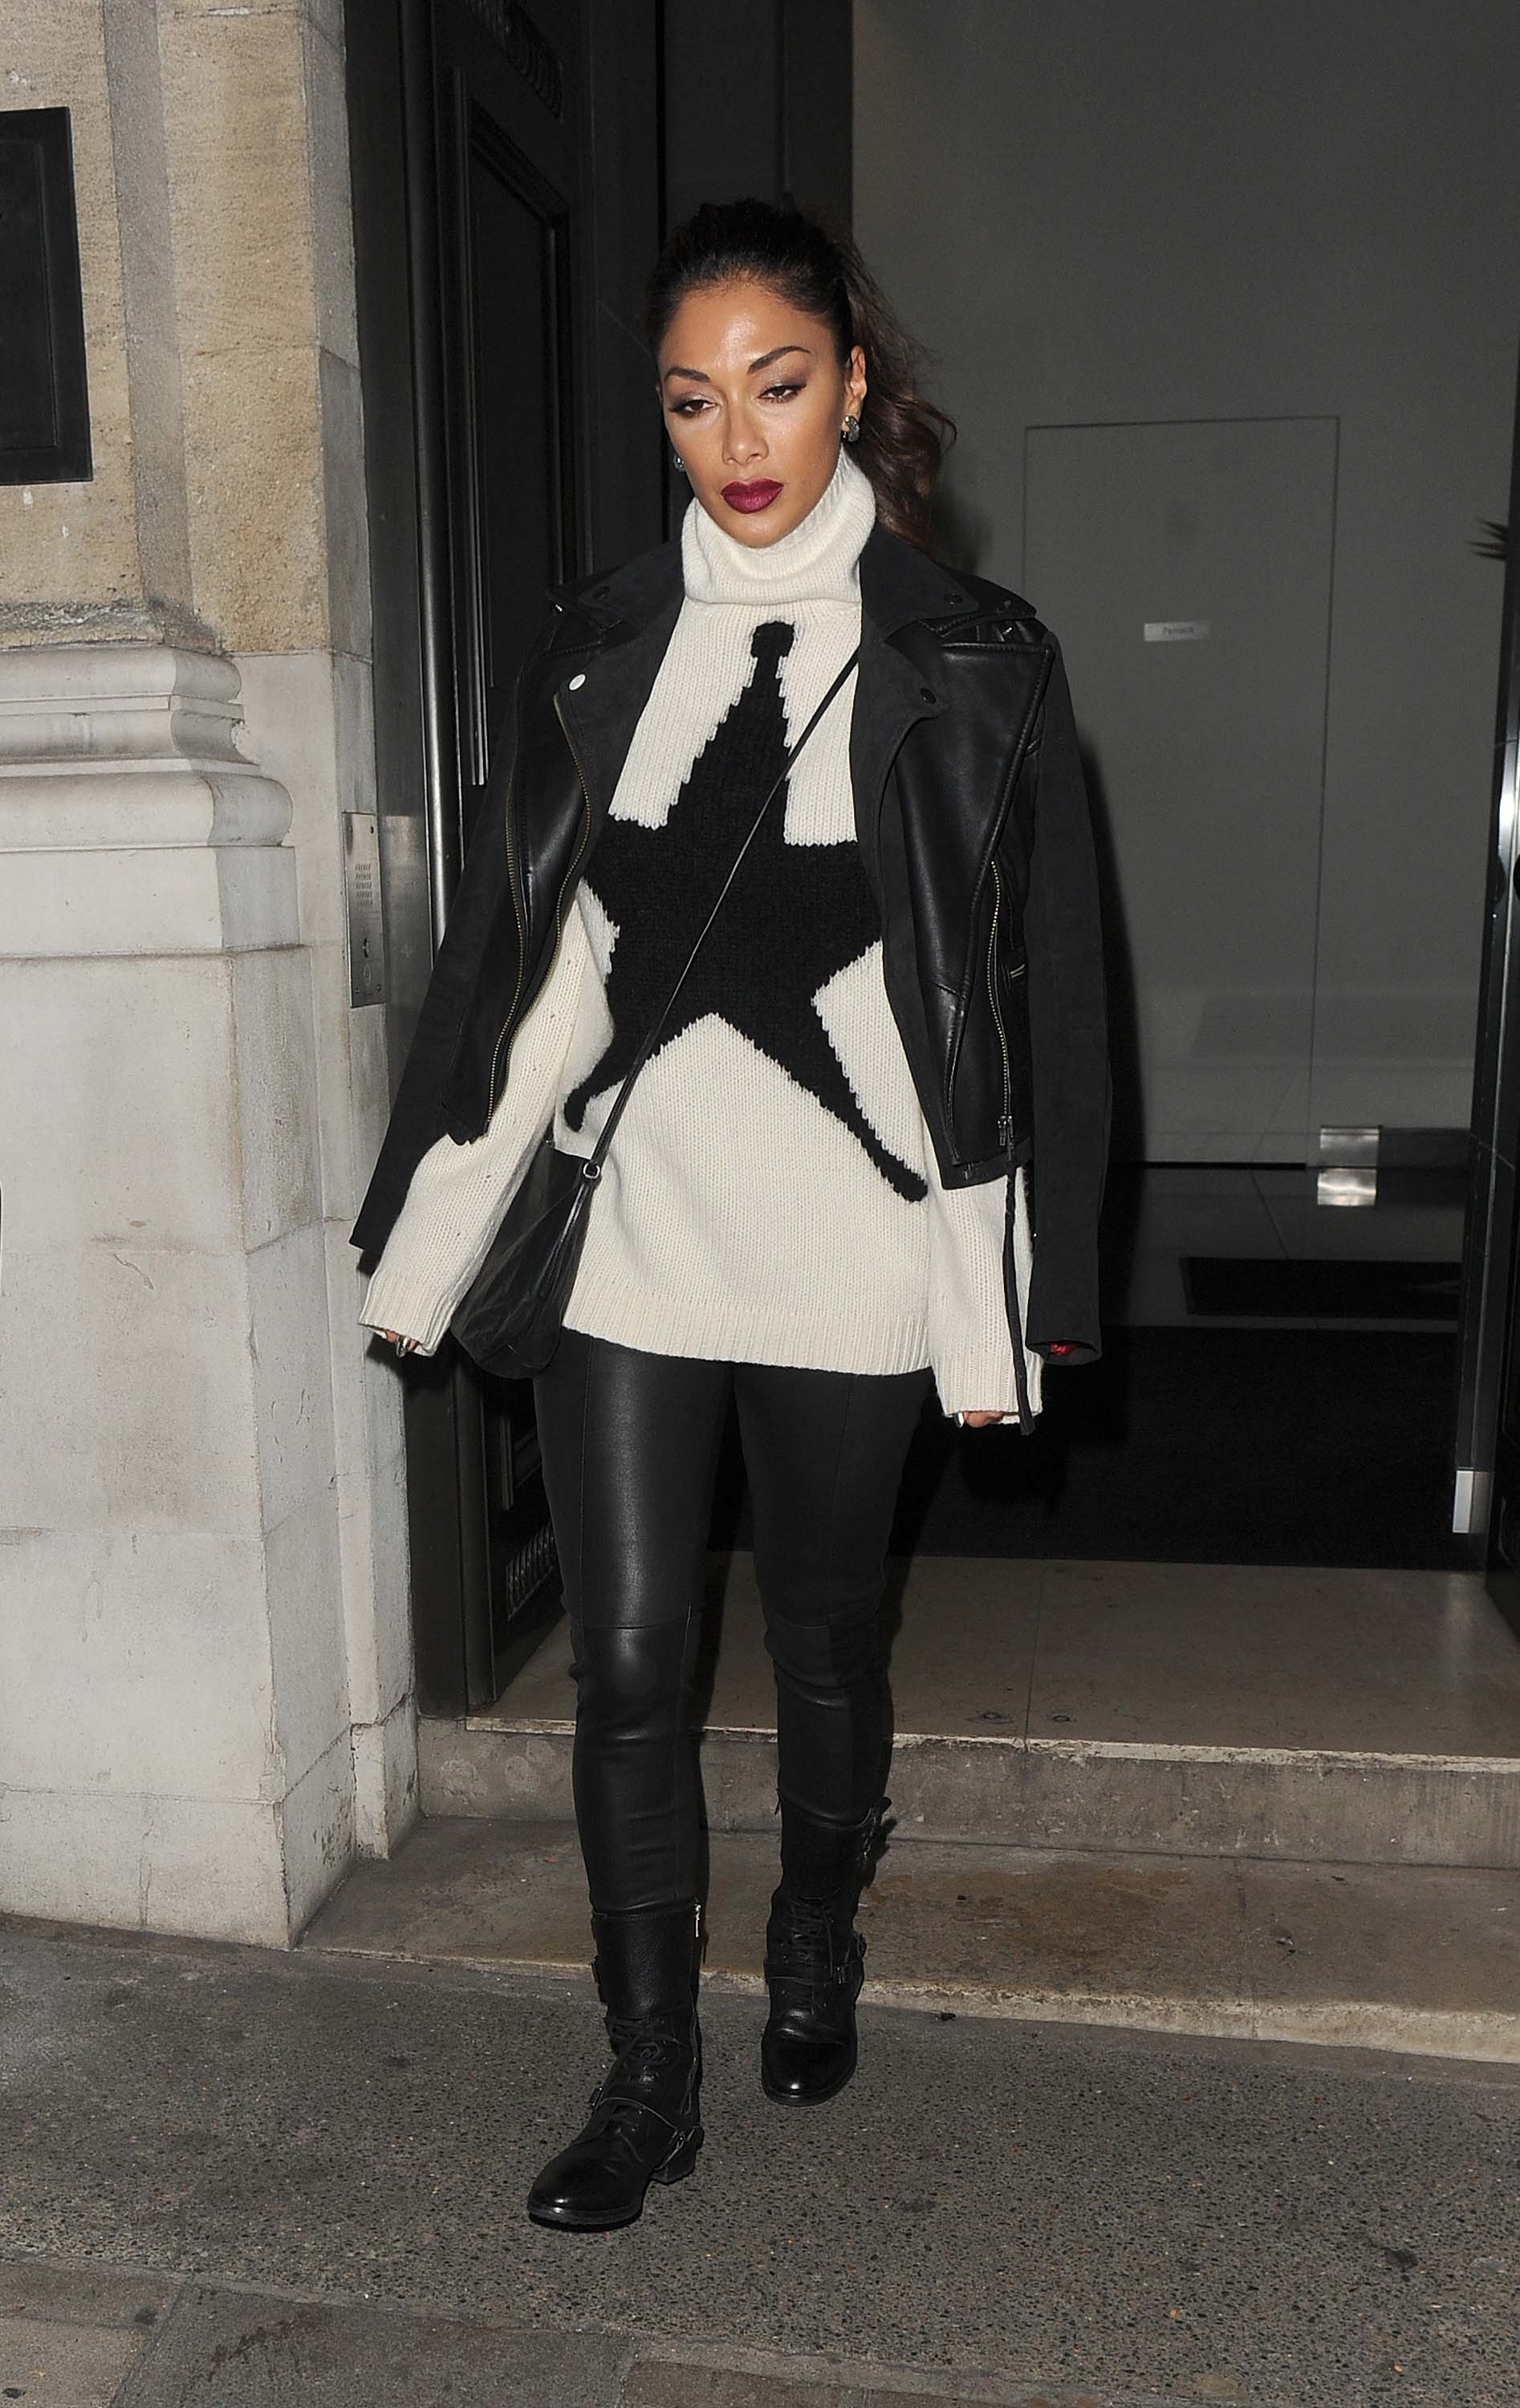 Nicole Scherzinger leaving the Groucho club